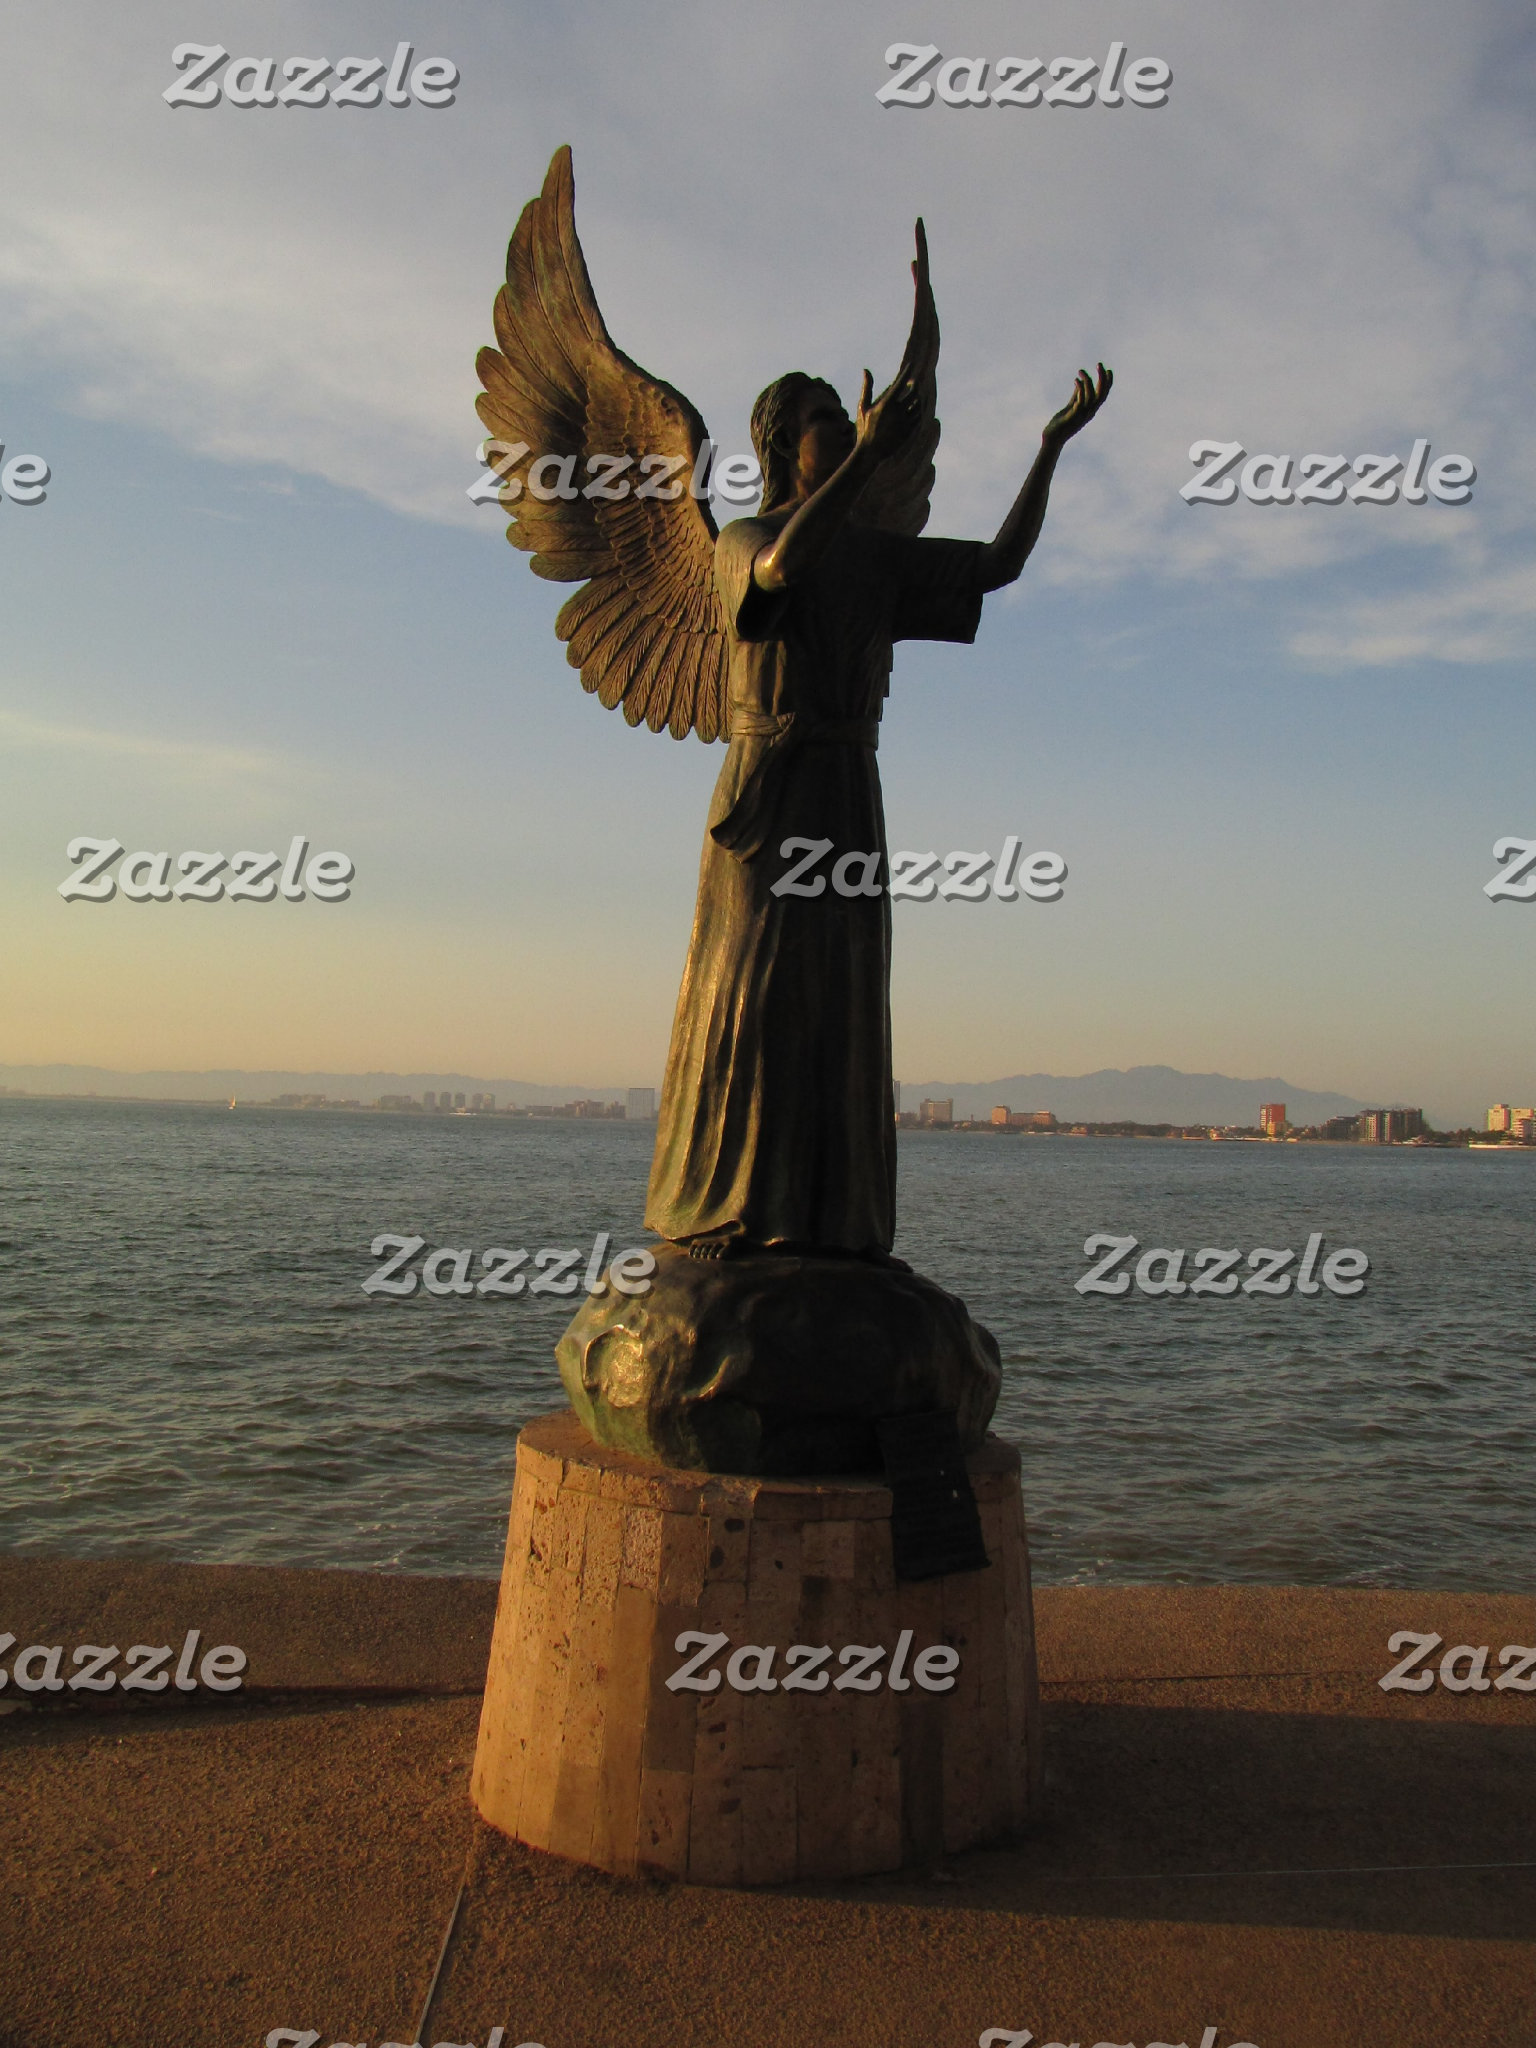 Statues, Sculptures and Structures